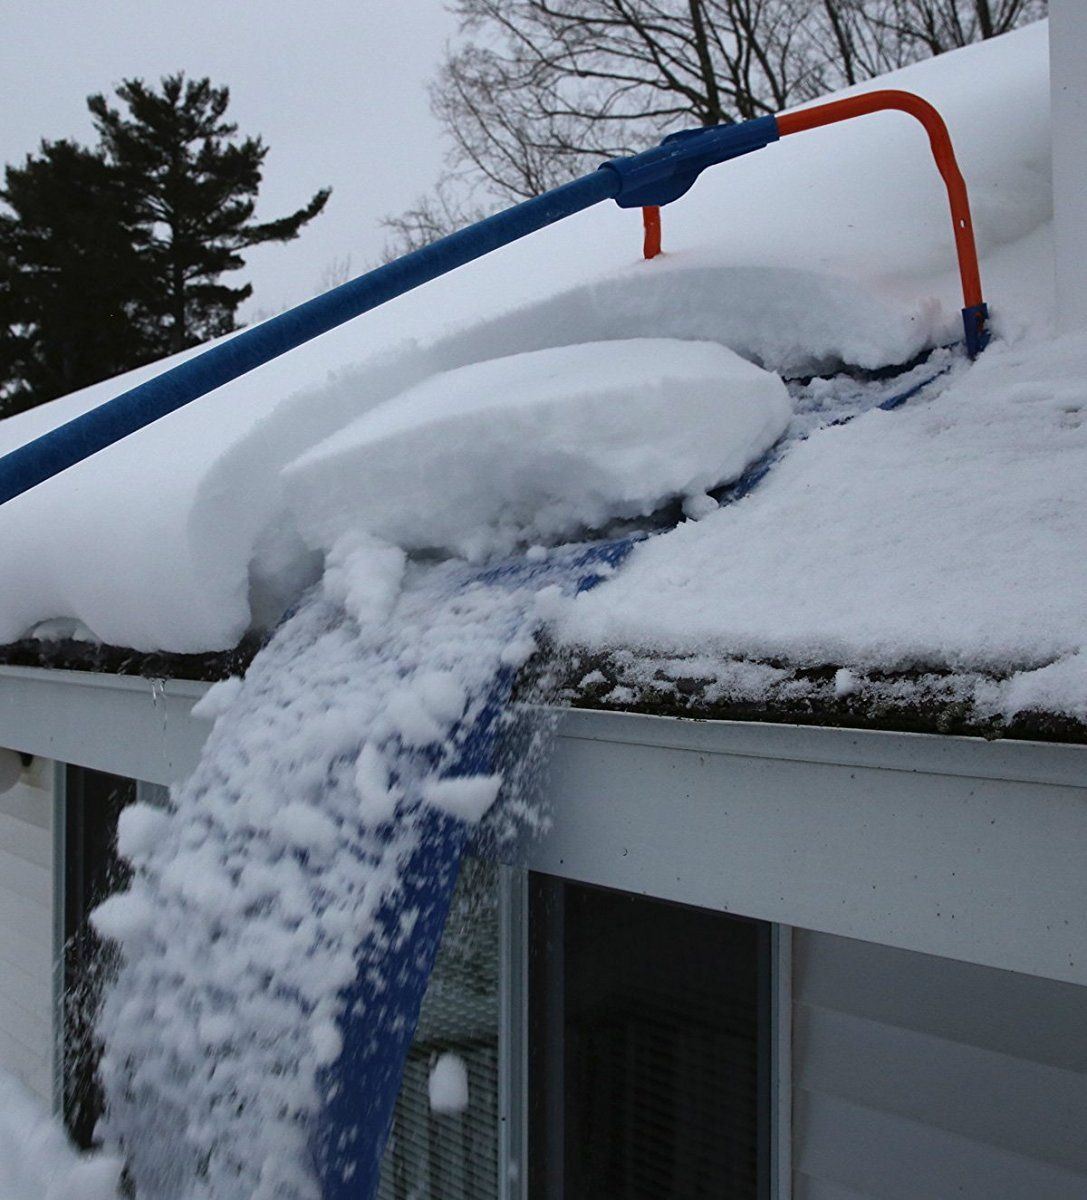 Avalanche Original 500 Roof Snow Removal System 17